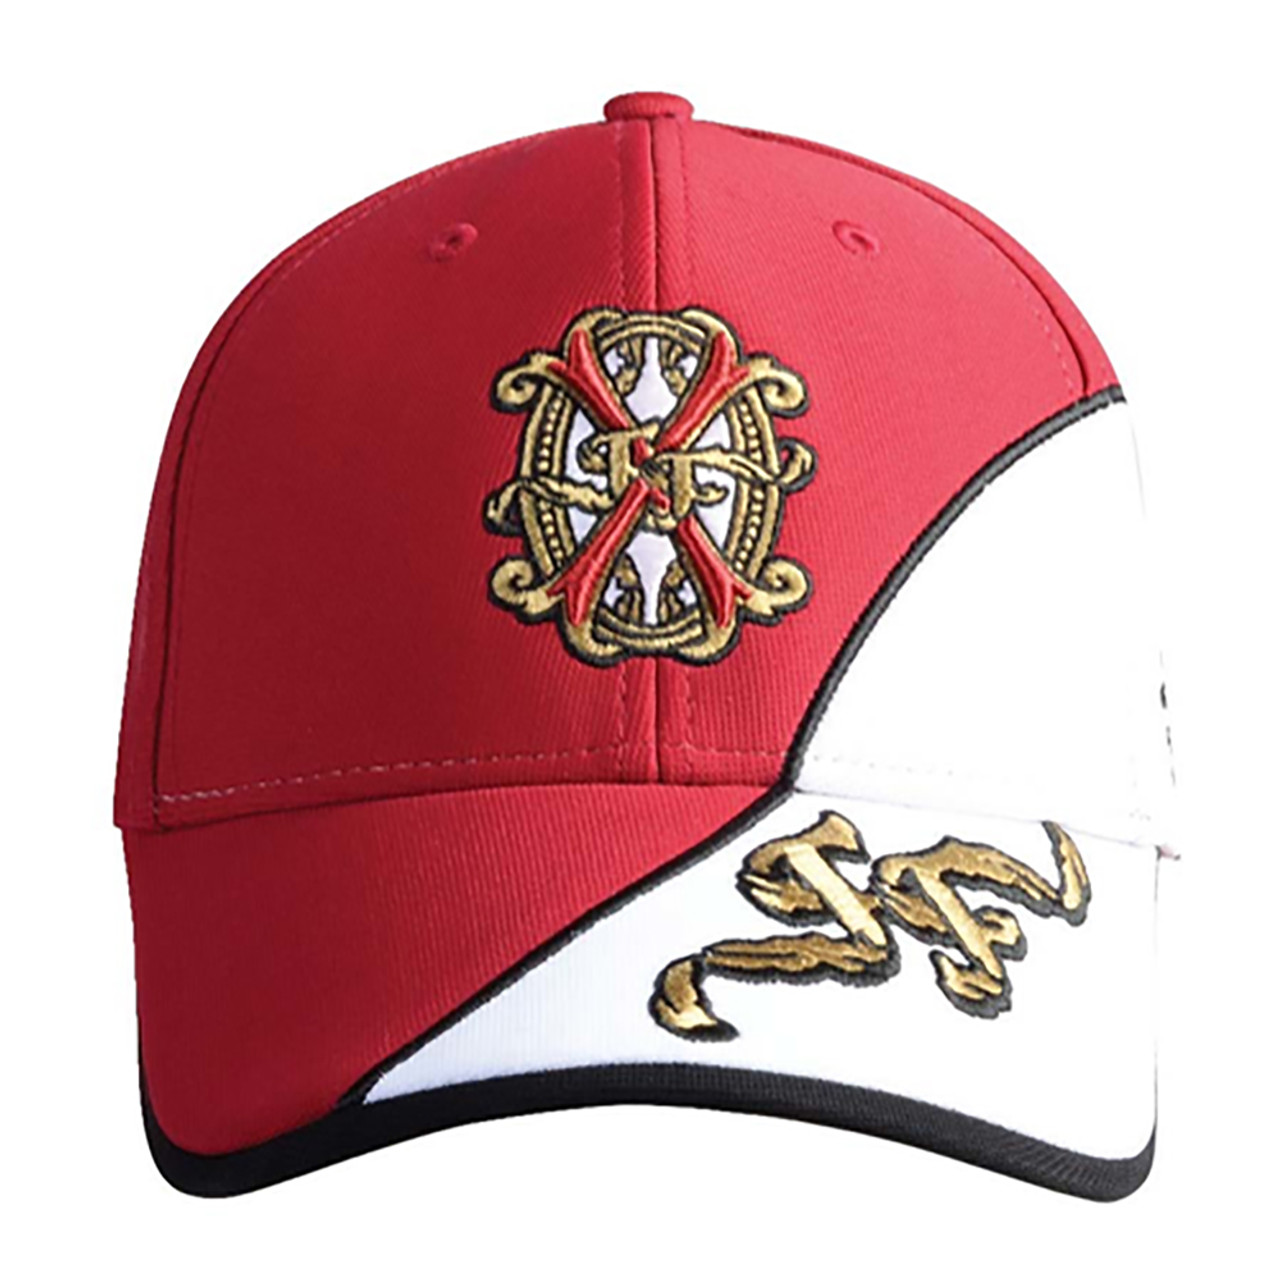 62ca3622a95 Arturo Fuente Opus X Baseball Hat - White and Red  11675.1529821399.jpg c 2 imbypass on